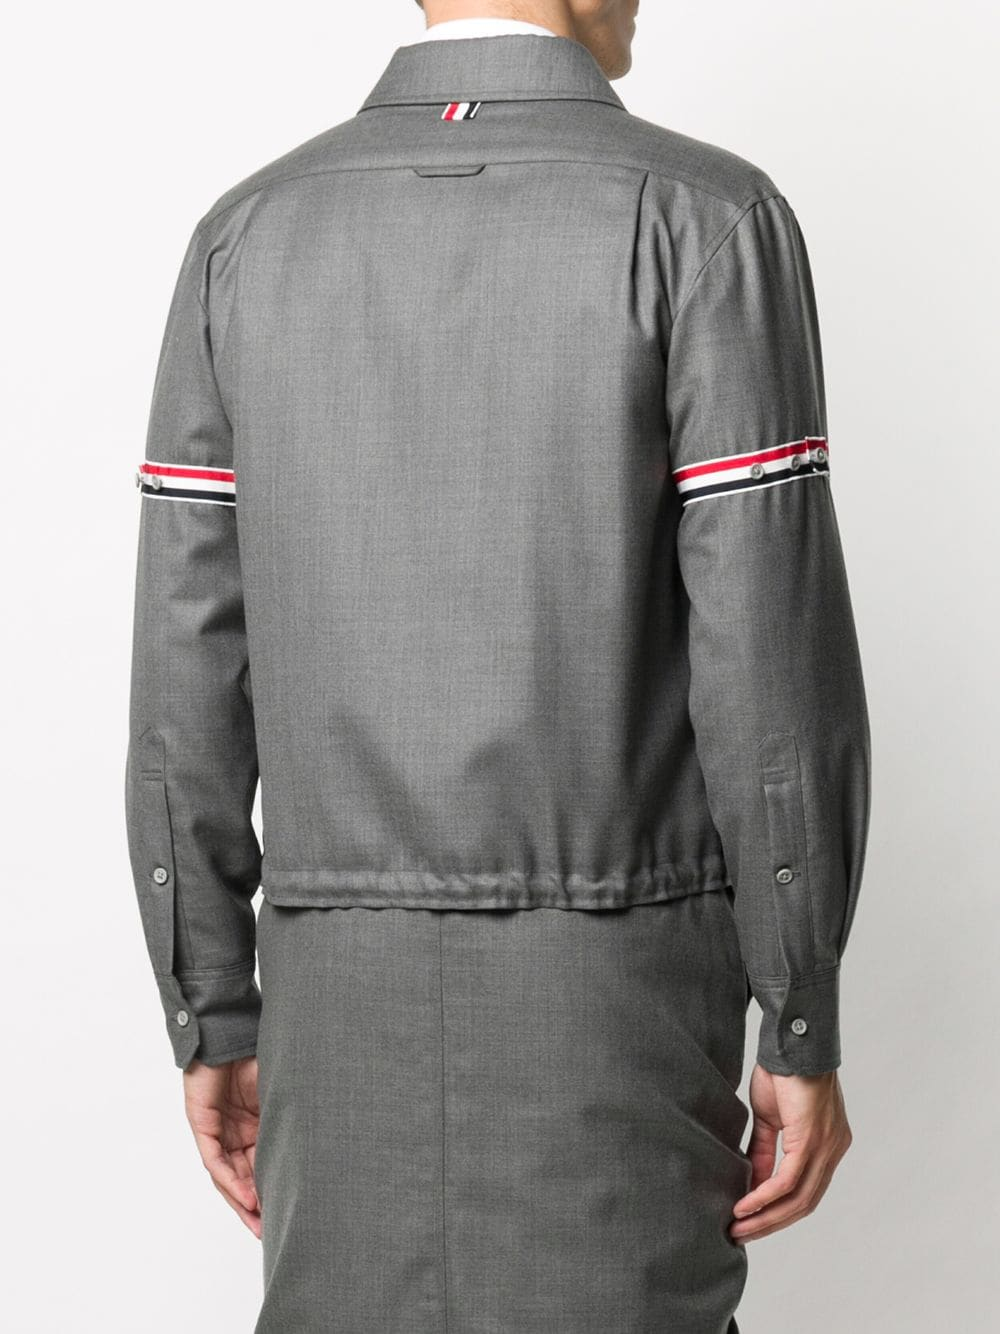 THOM BROWNE MEN ZIP UP SHIRT W/ RWB ARMBAND SLEEVES IN SUPER 120'S TWILL